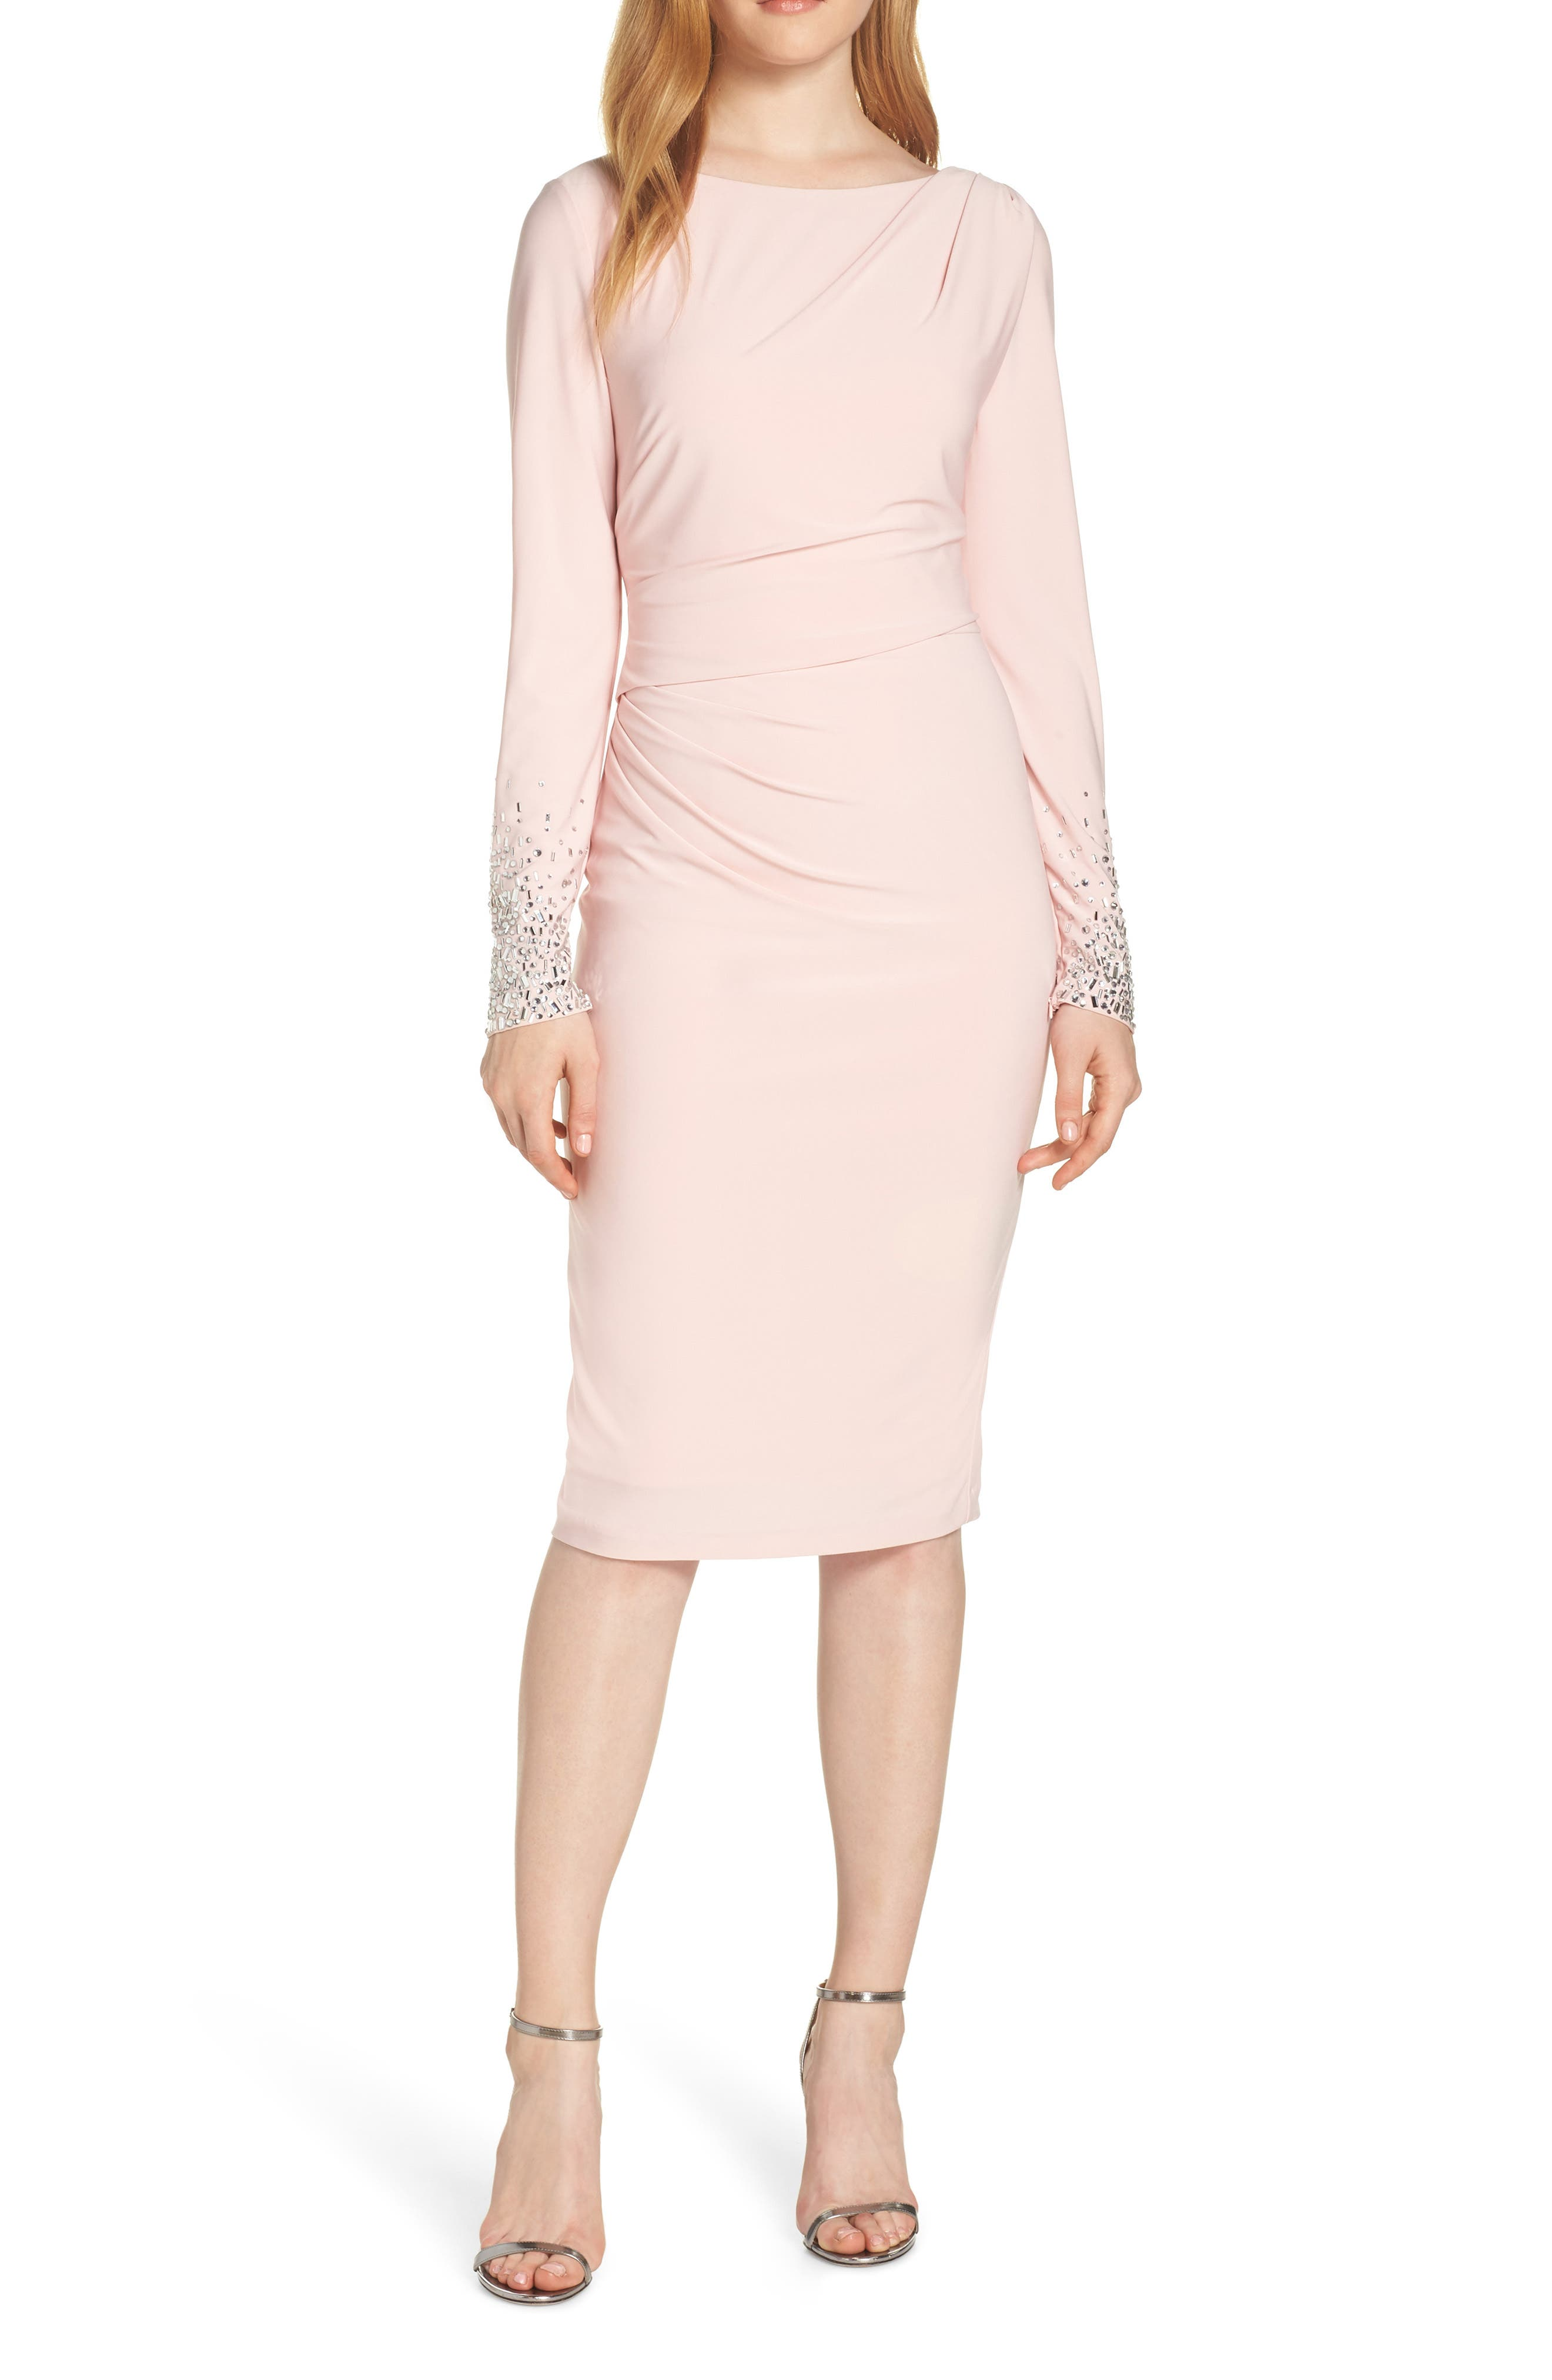 Vince Camuto Long Sleeve Bateau Neck Cocktail Dress